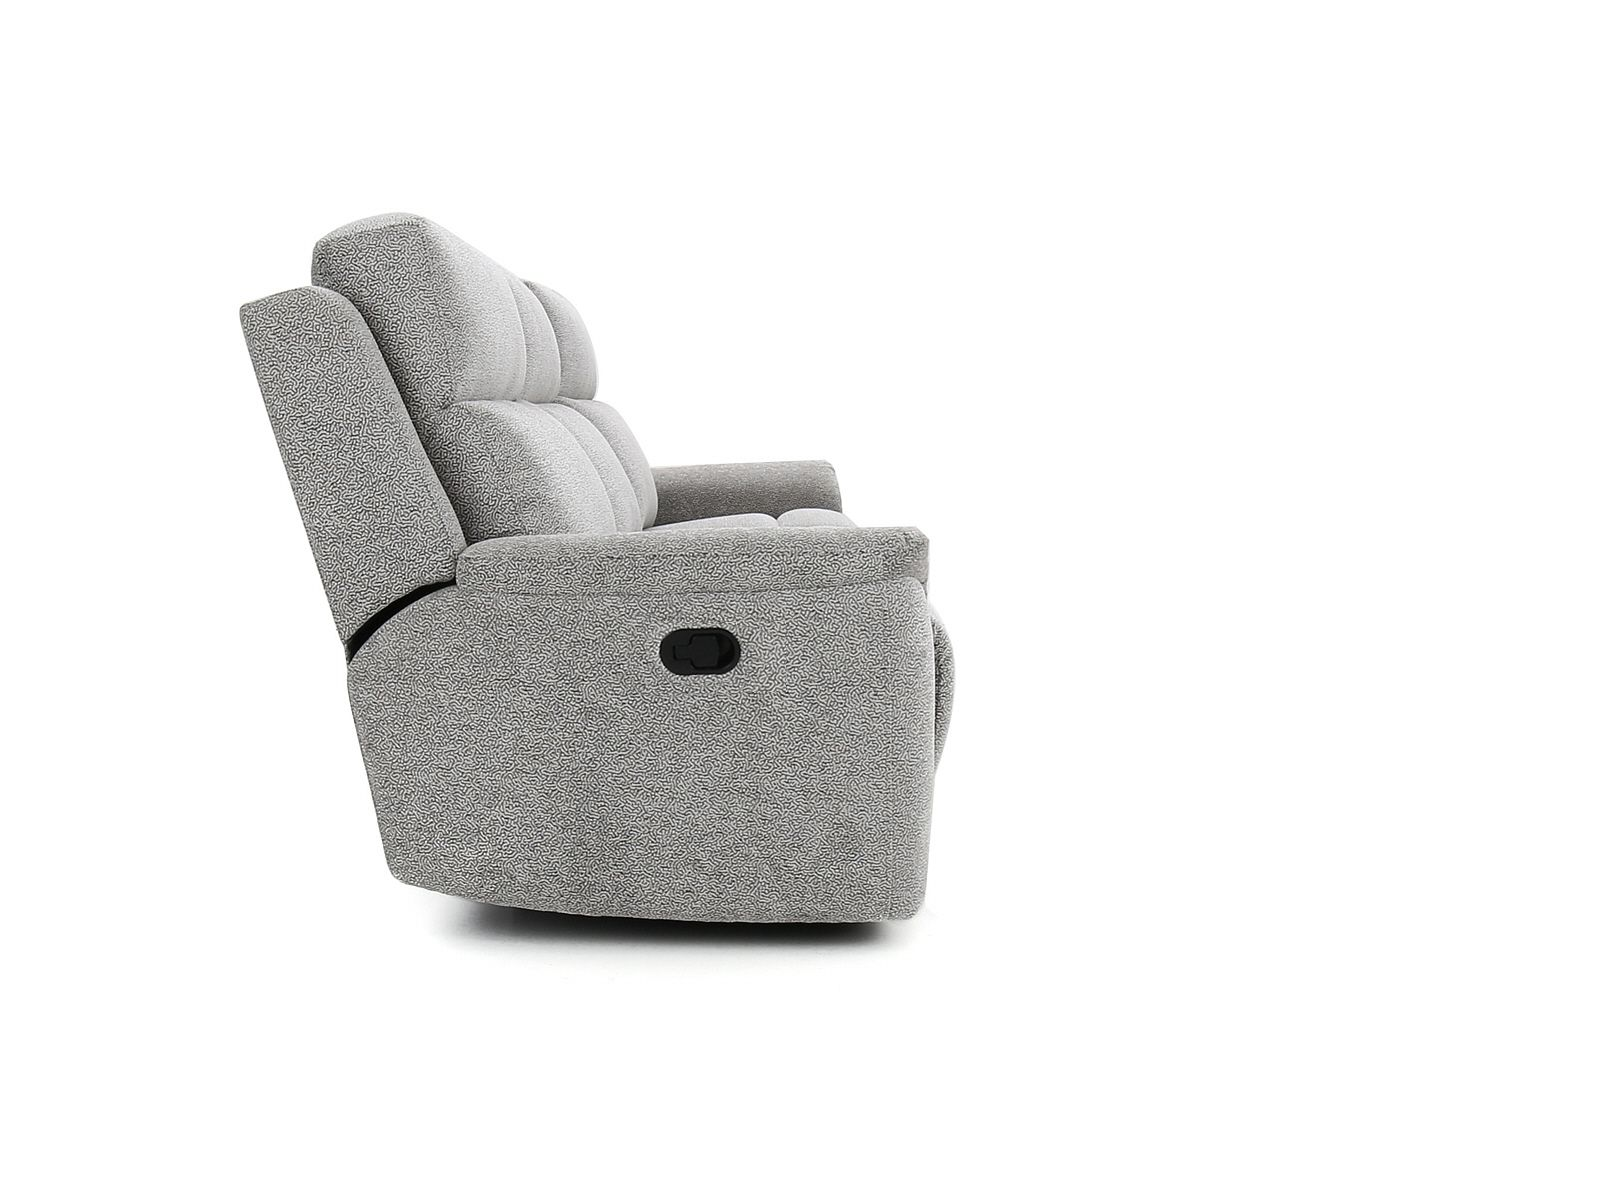 Colwall 3 Seater Double Manual Recliners Type F8 Fabric